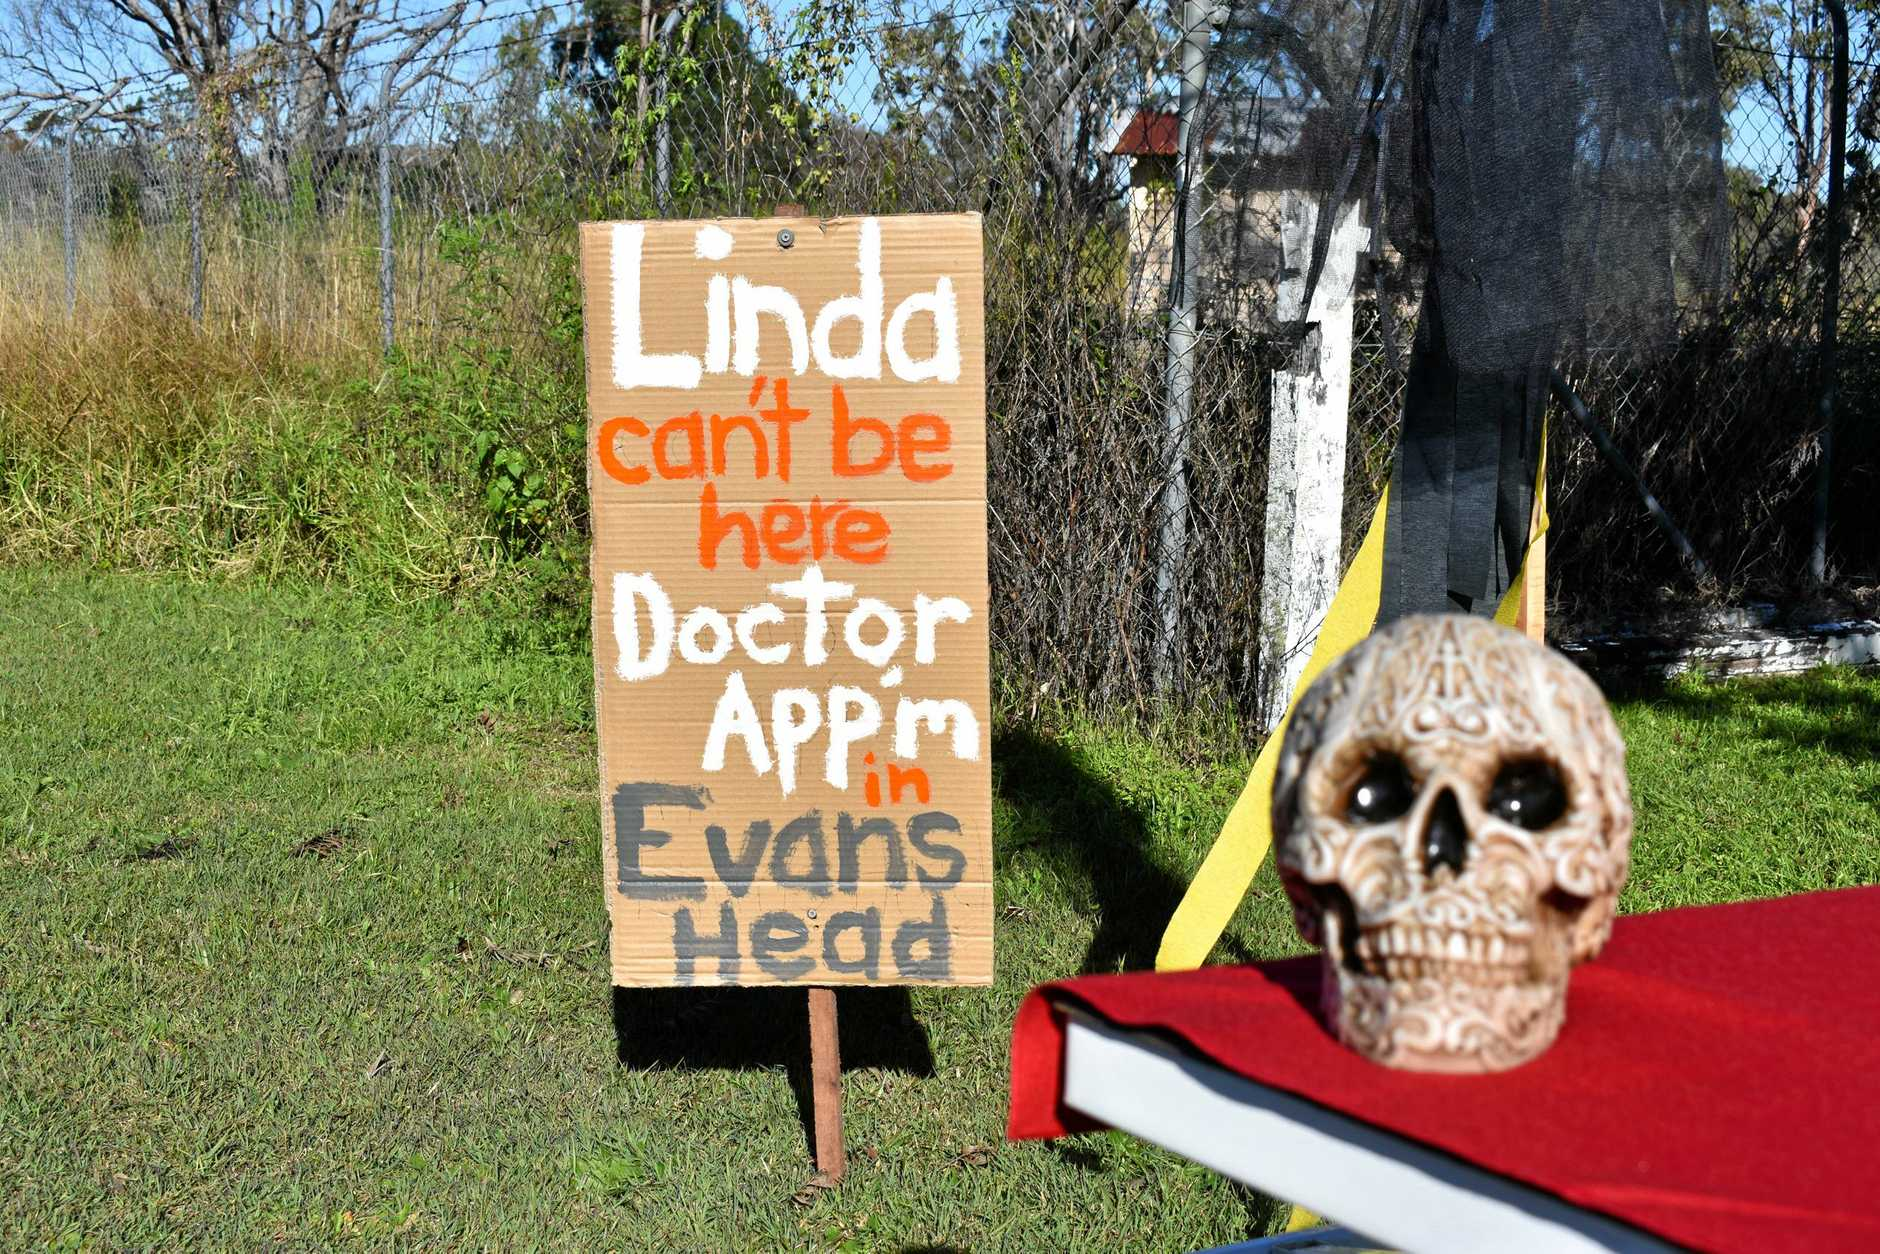 Linda couldn't be at the protest, she had a doctor's appointment.